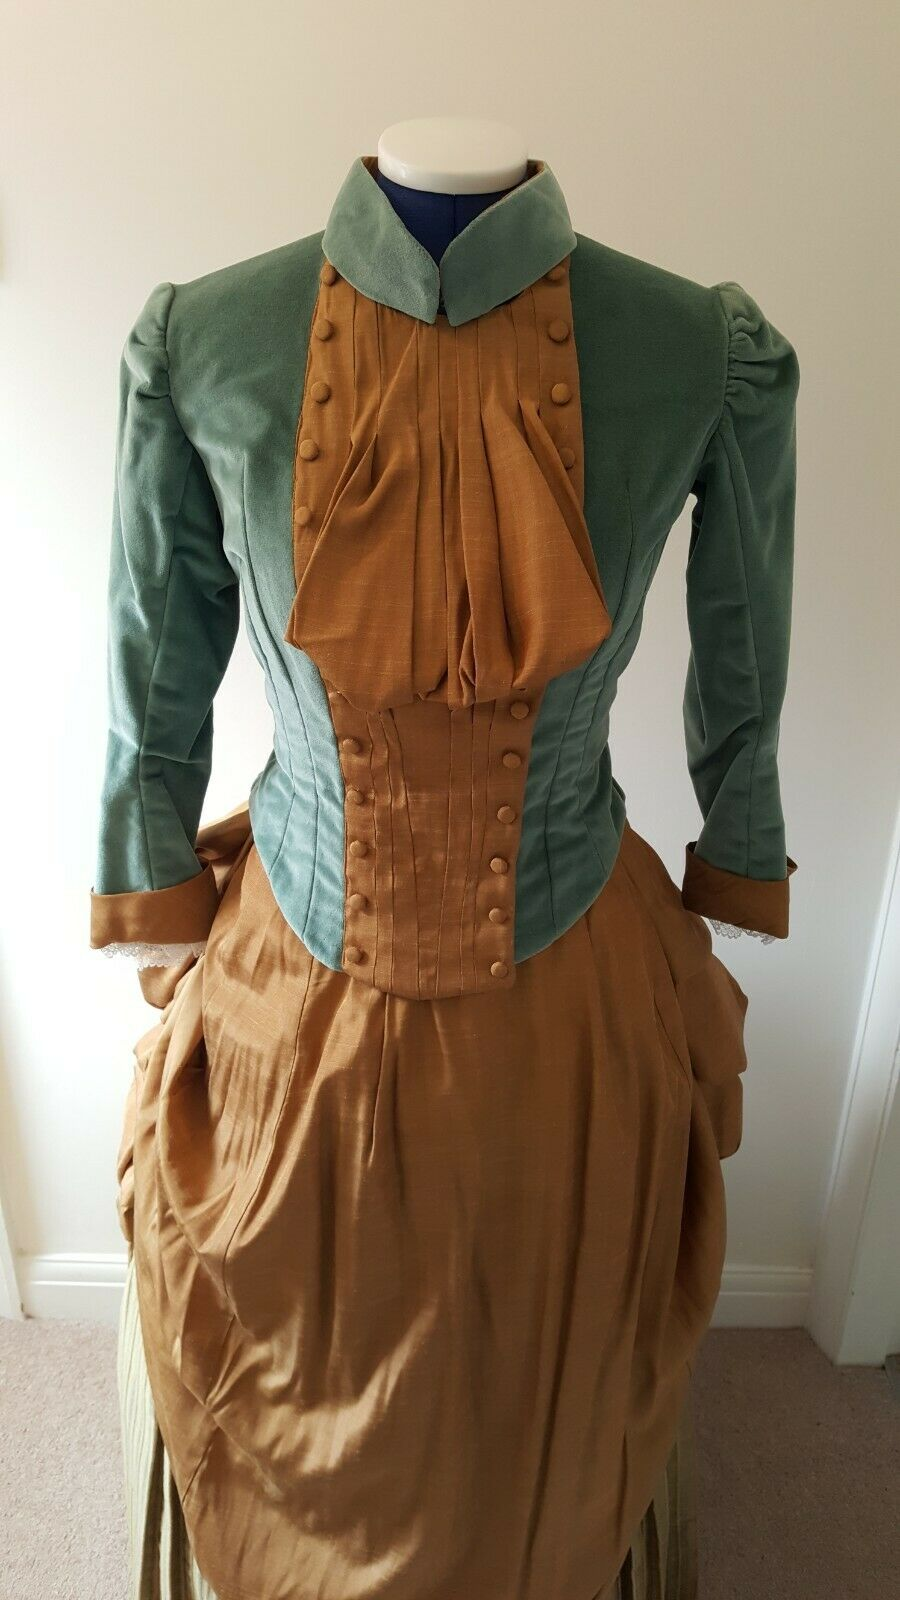 Stage Costume Late 1800s Nora A Dolls House By Henrik Ibsen Approx Size 8